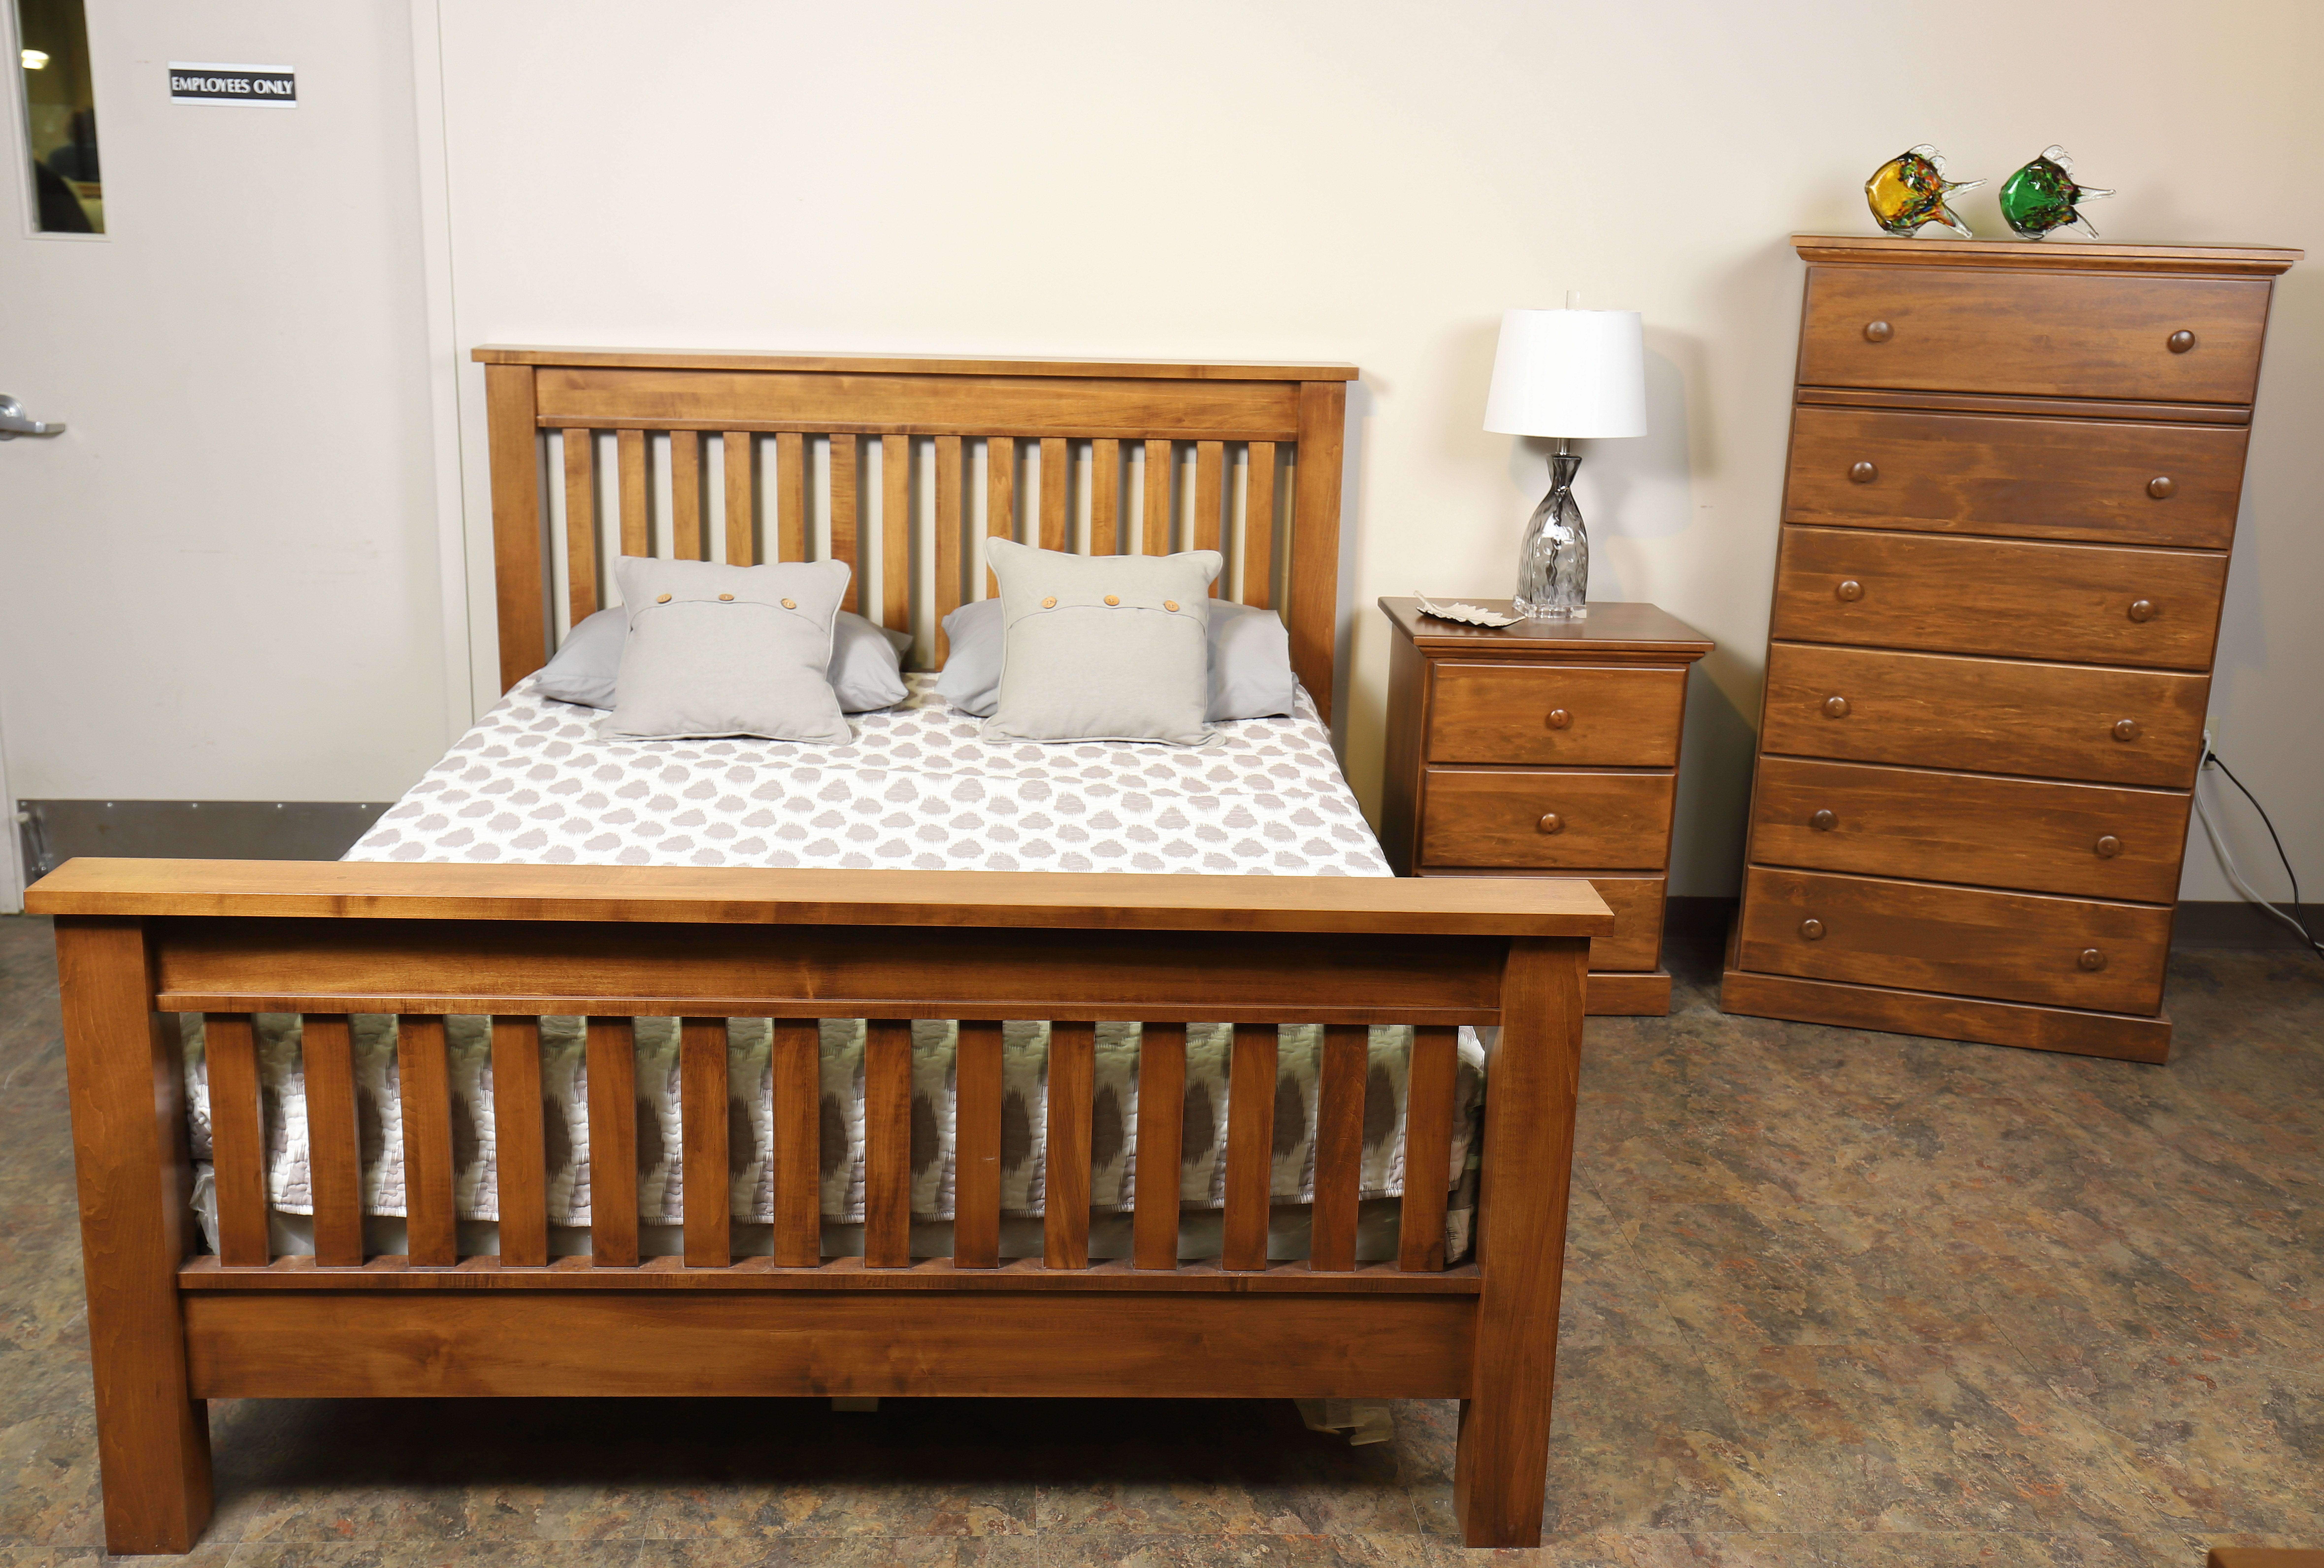 Our Country Slat Bed. Shown Early American stain on brown